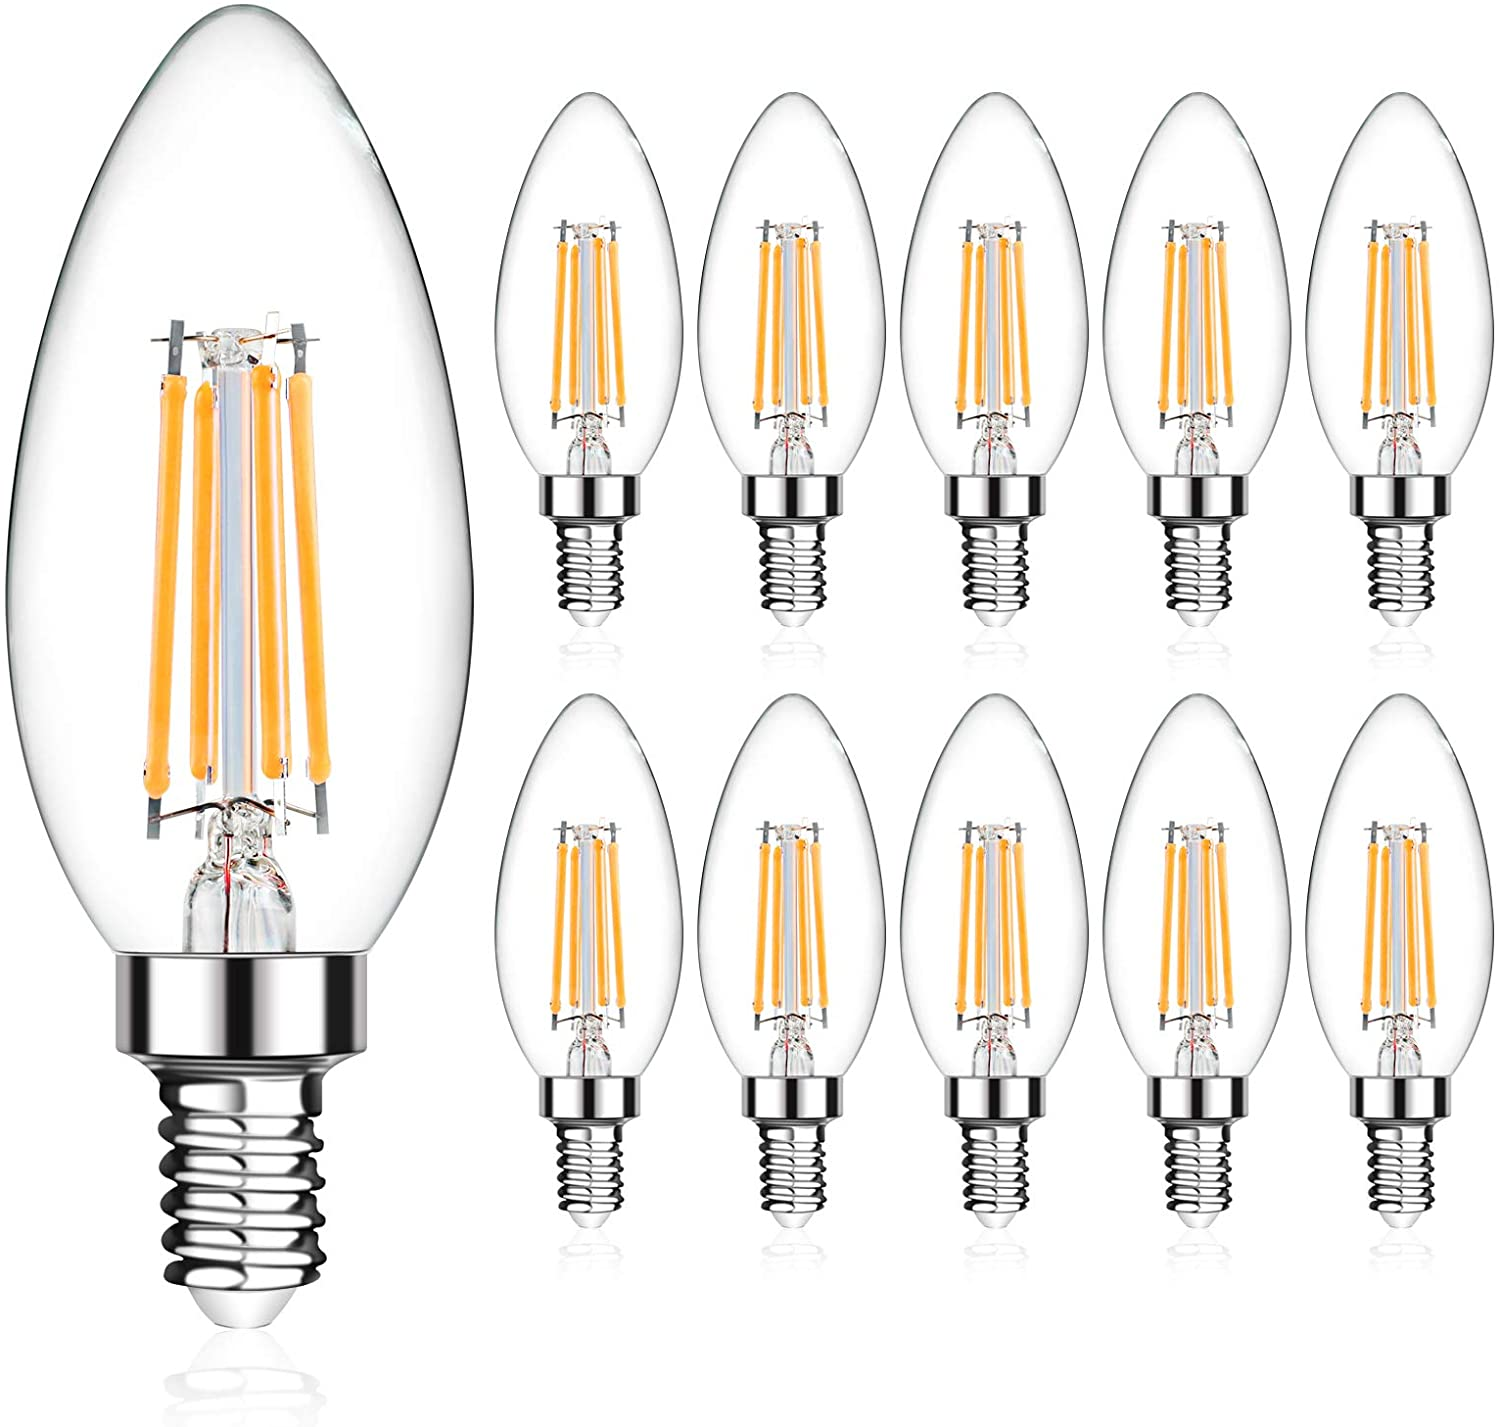 LANGREE E12 LED Candelabra Base Bulbs 60W Equivalent, 5W LED Candle Light Bulbs, LED Chandelier Light Bulbs, Non-Dimmable, 2700K Soft White, 550LM - Pack of 10